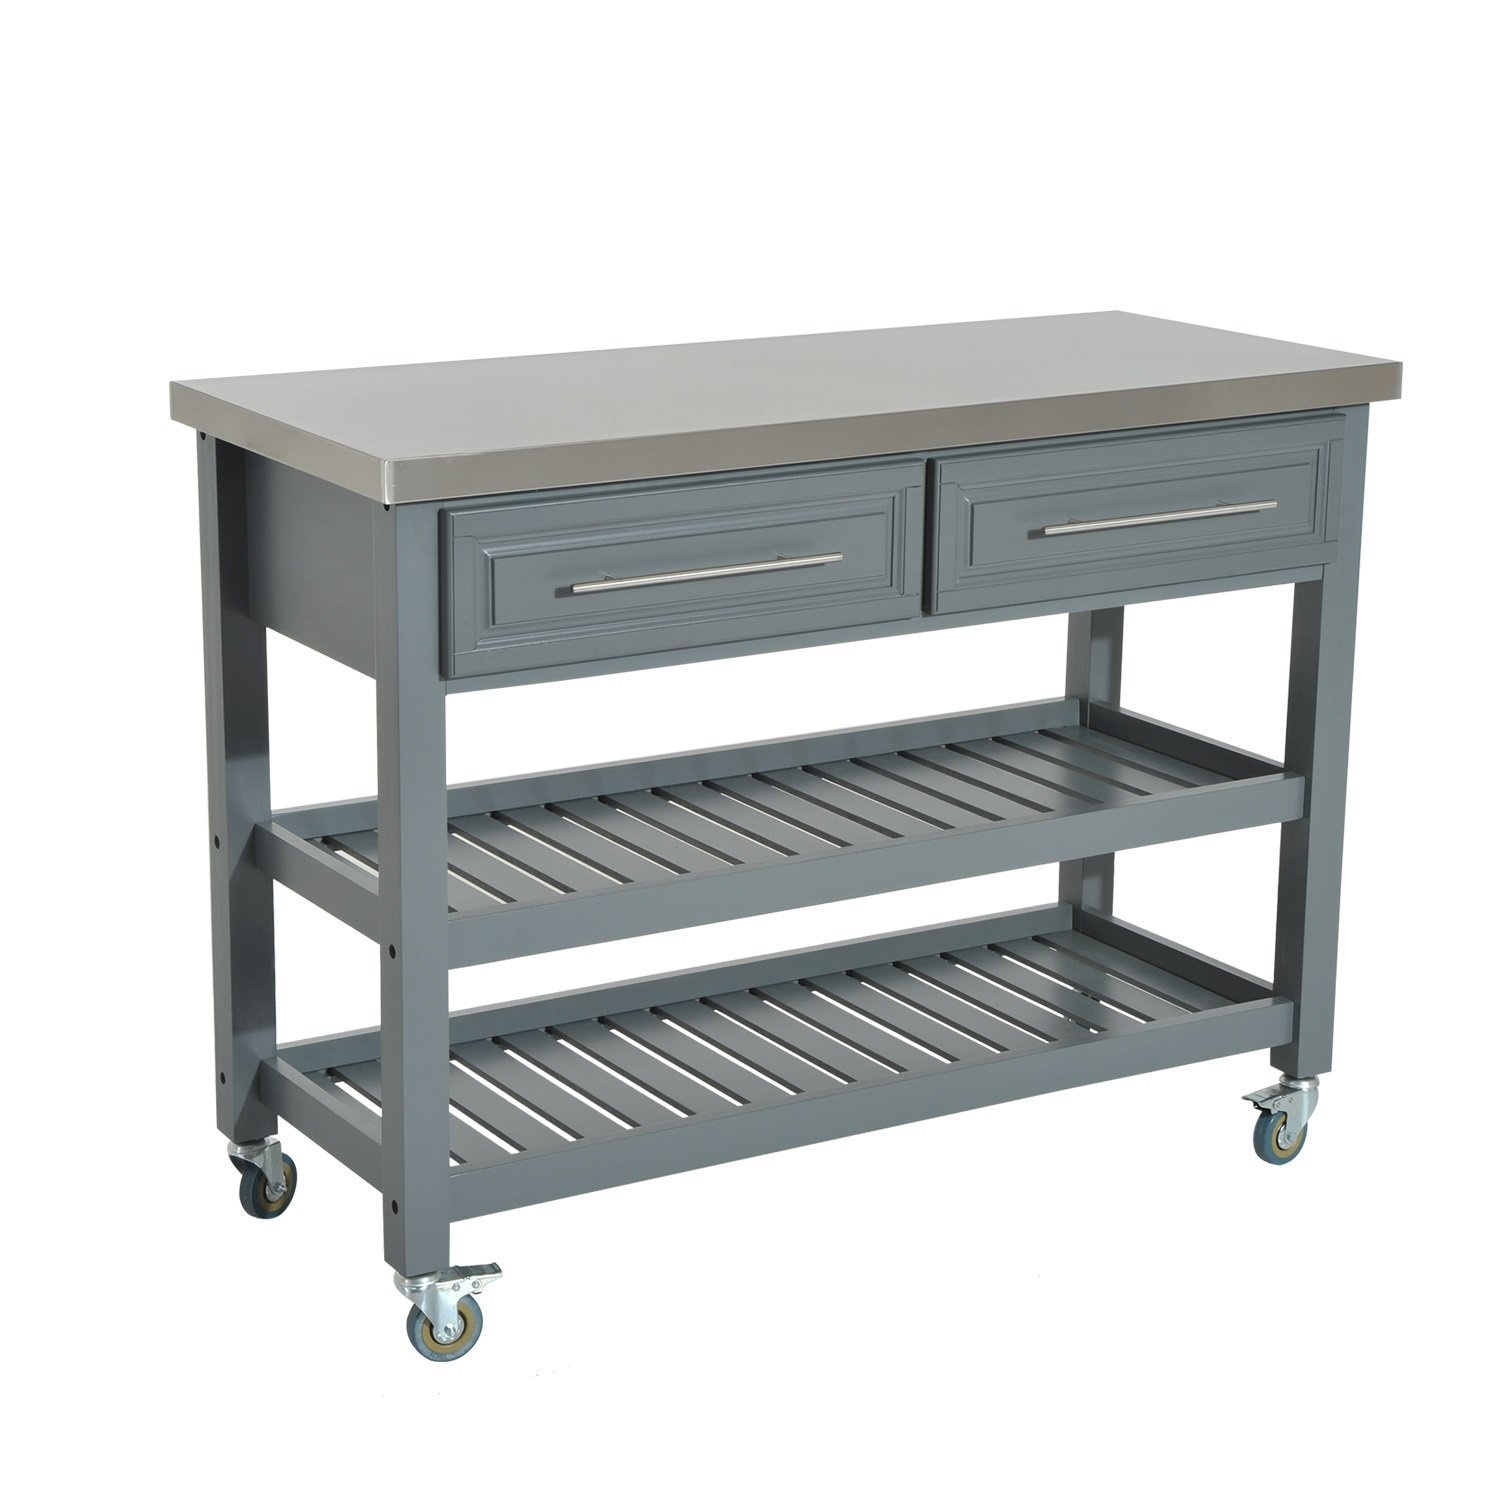 "HomCom 47"" 3 Tier Stainless Steel Rolling Kitchen Cart With Shelves and Drawers"